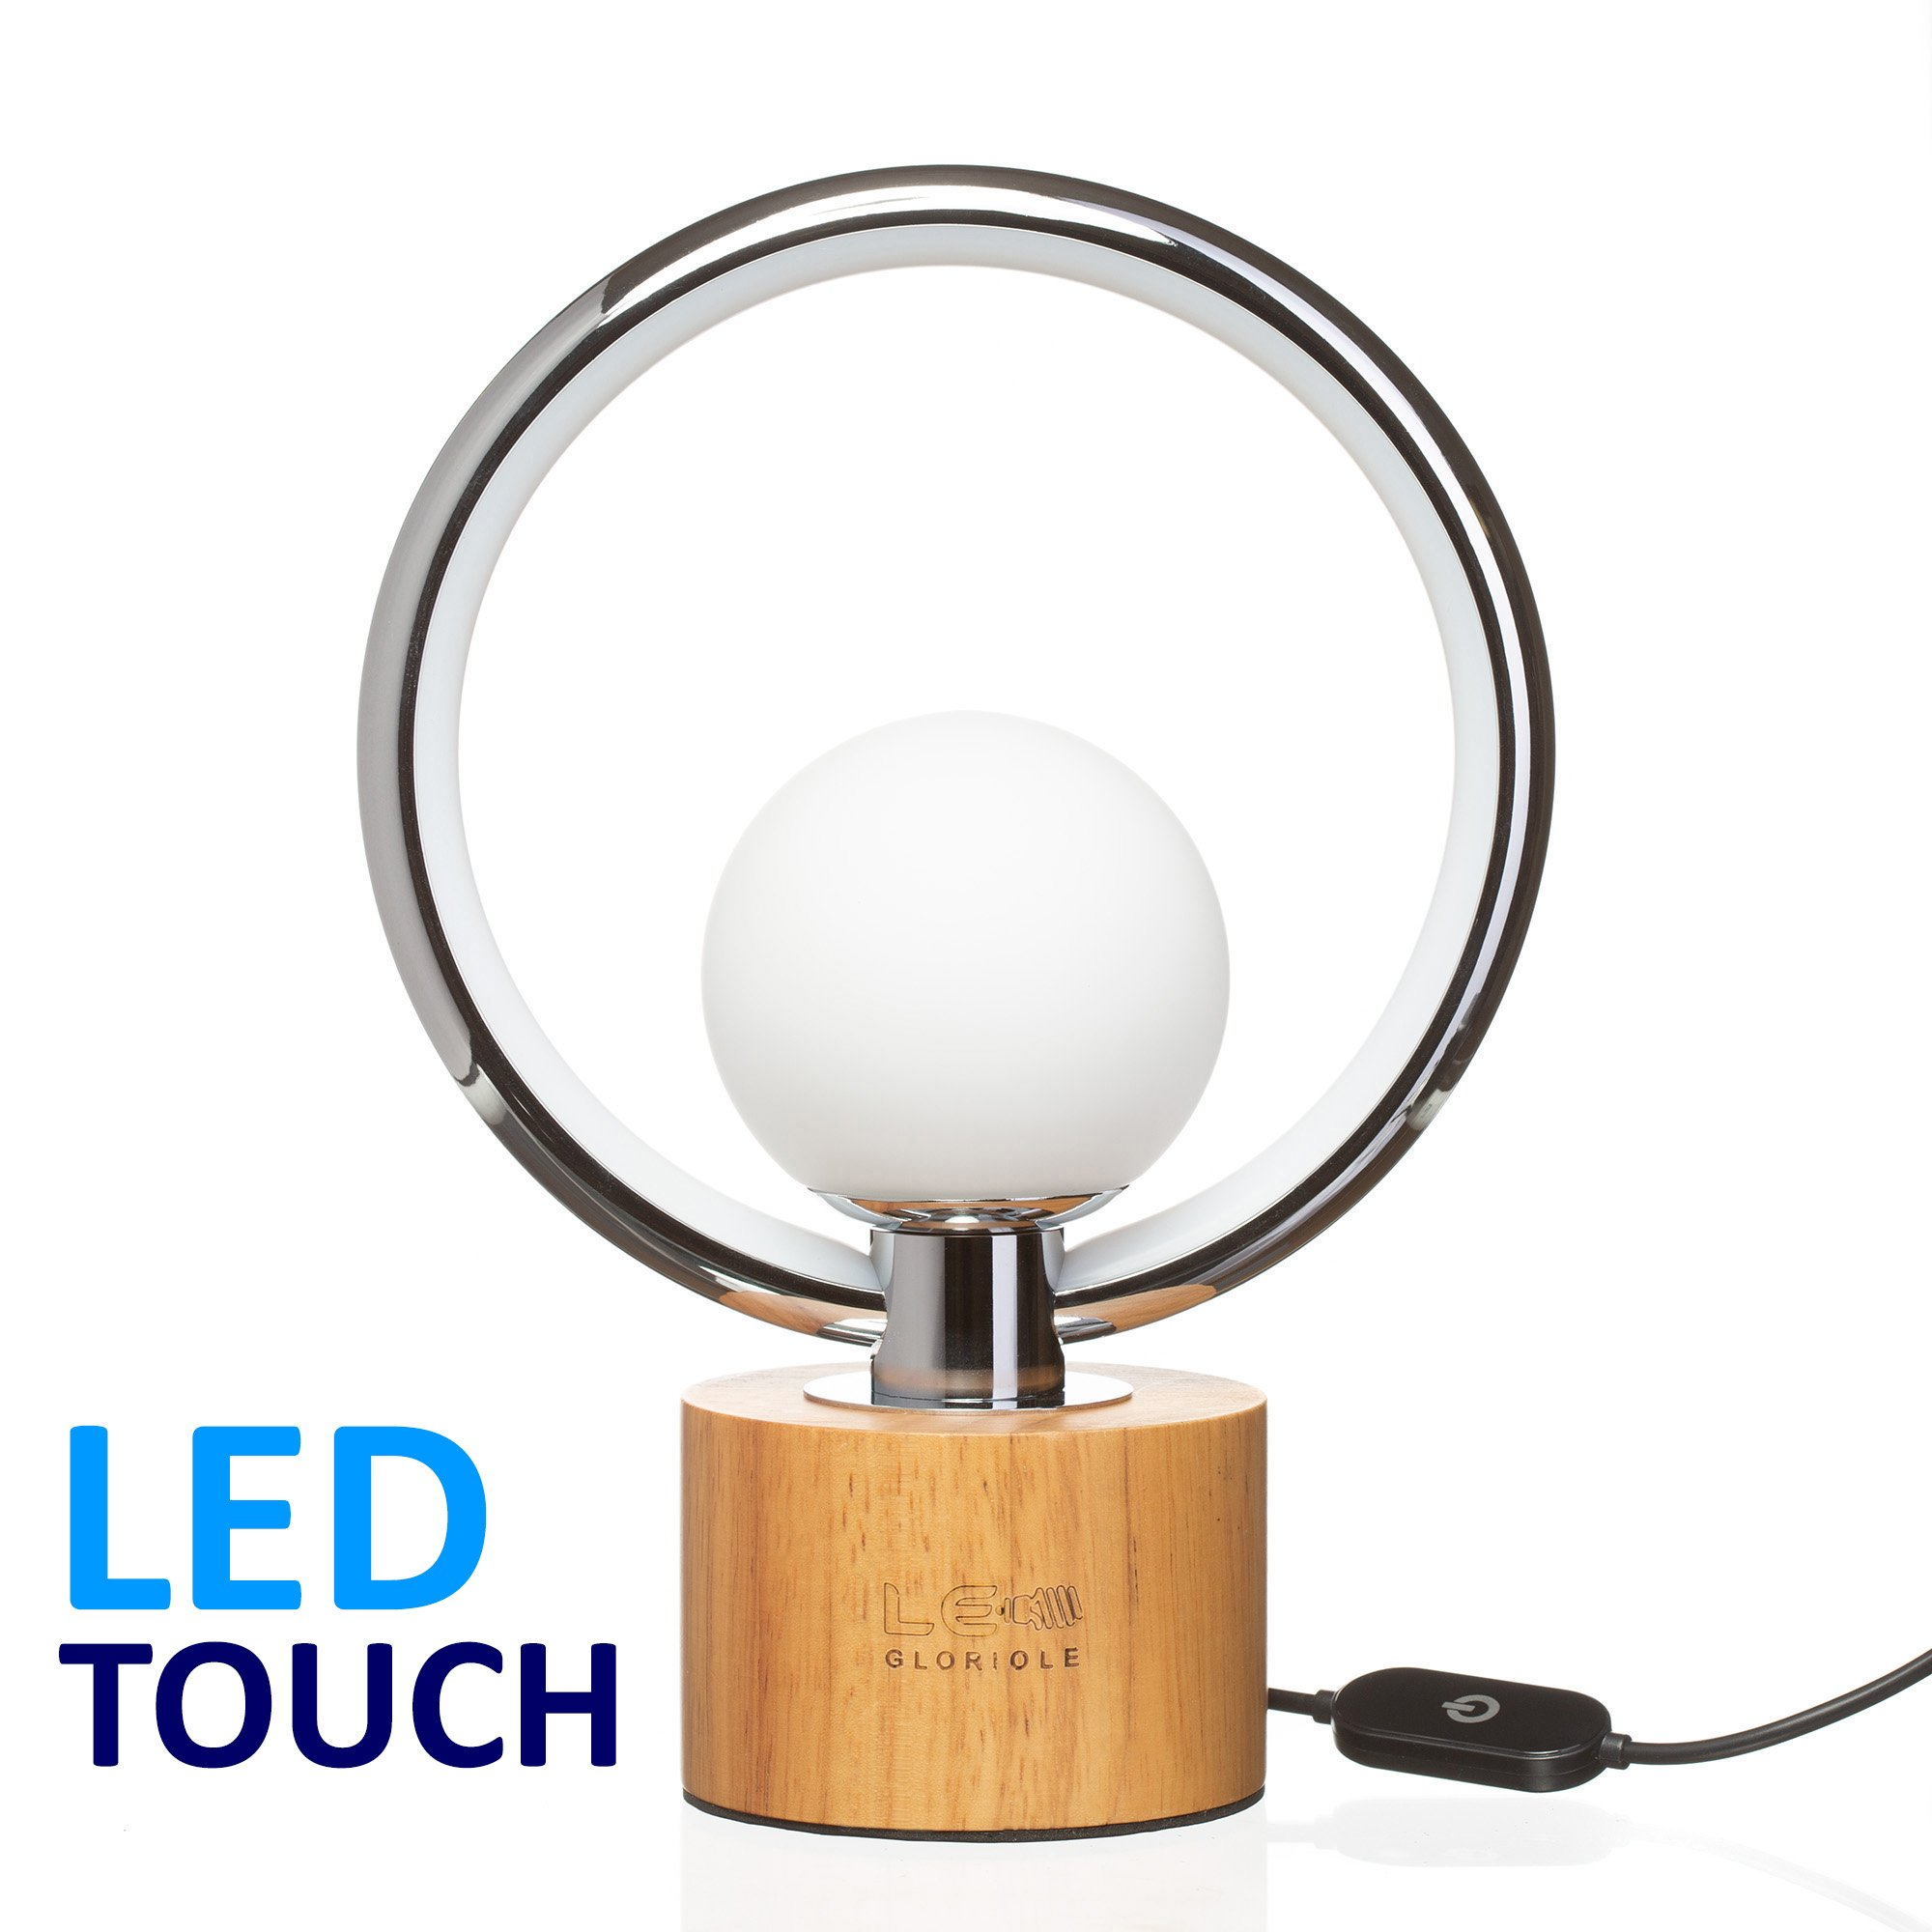 Modern LEDGloriole Desk Lamp with Unique Shade – Bedroom Lamps with Natural Wooden Base – Luxury Bedside Table Lamp – Well-Designed LED Light Perfect for Bedroom or Office